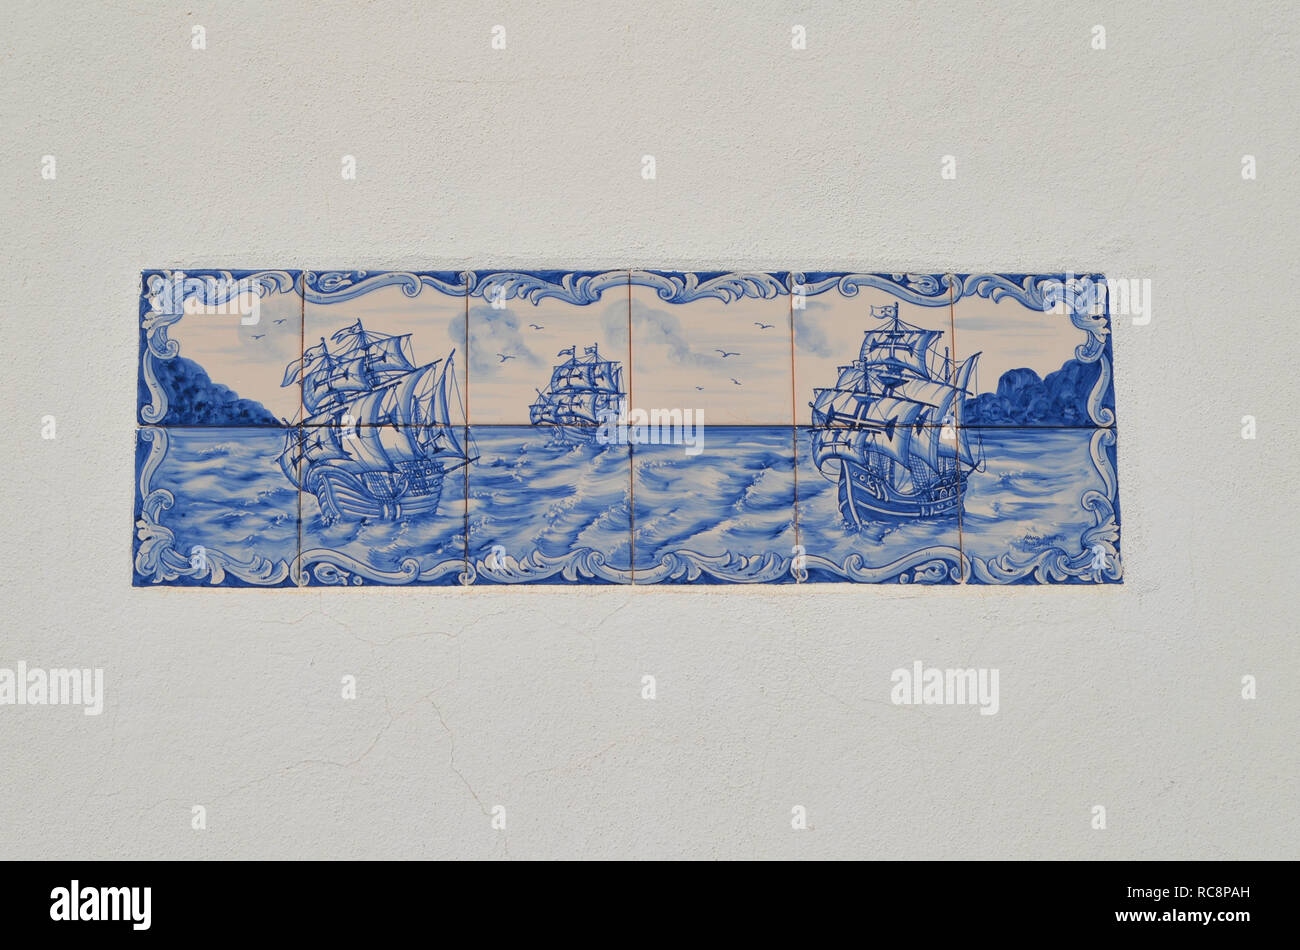 Traditional tiles in a street of Vila do Bispo (Algarve, Southern Portugal) representing the Portuguese Age of Discovery - Stock Image